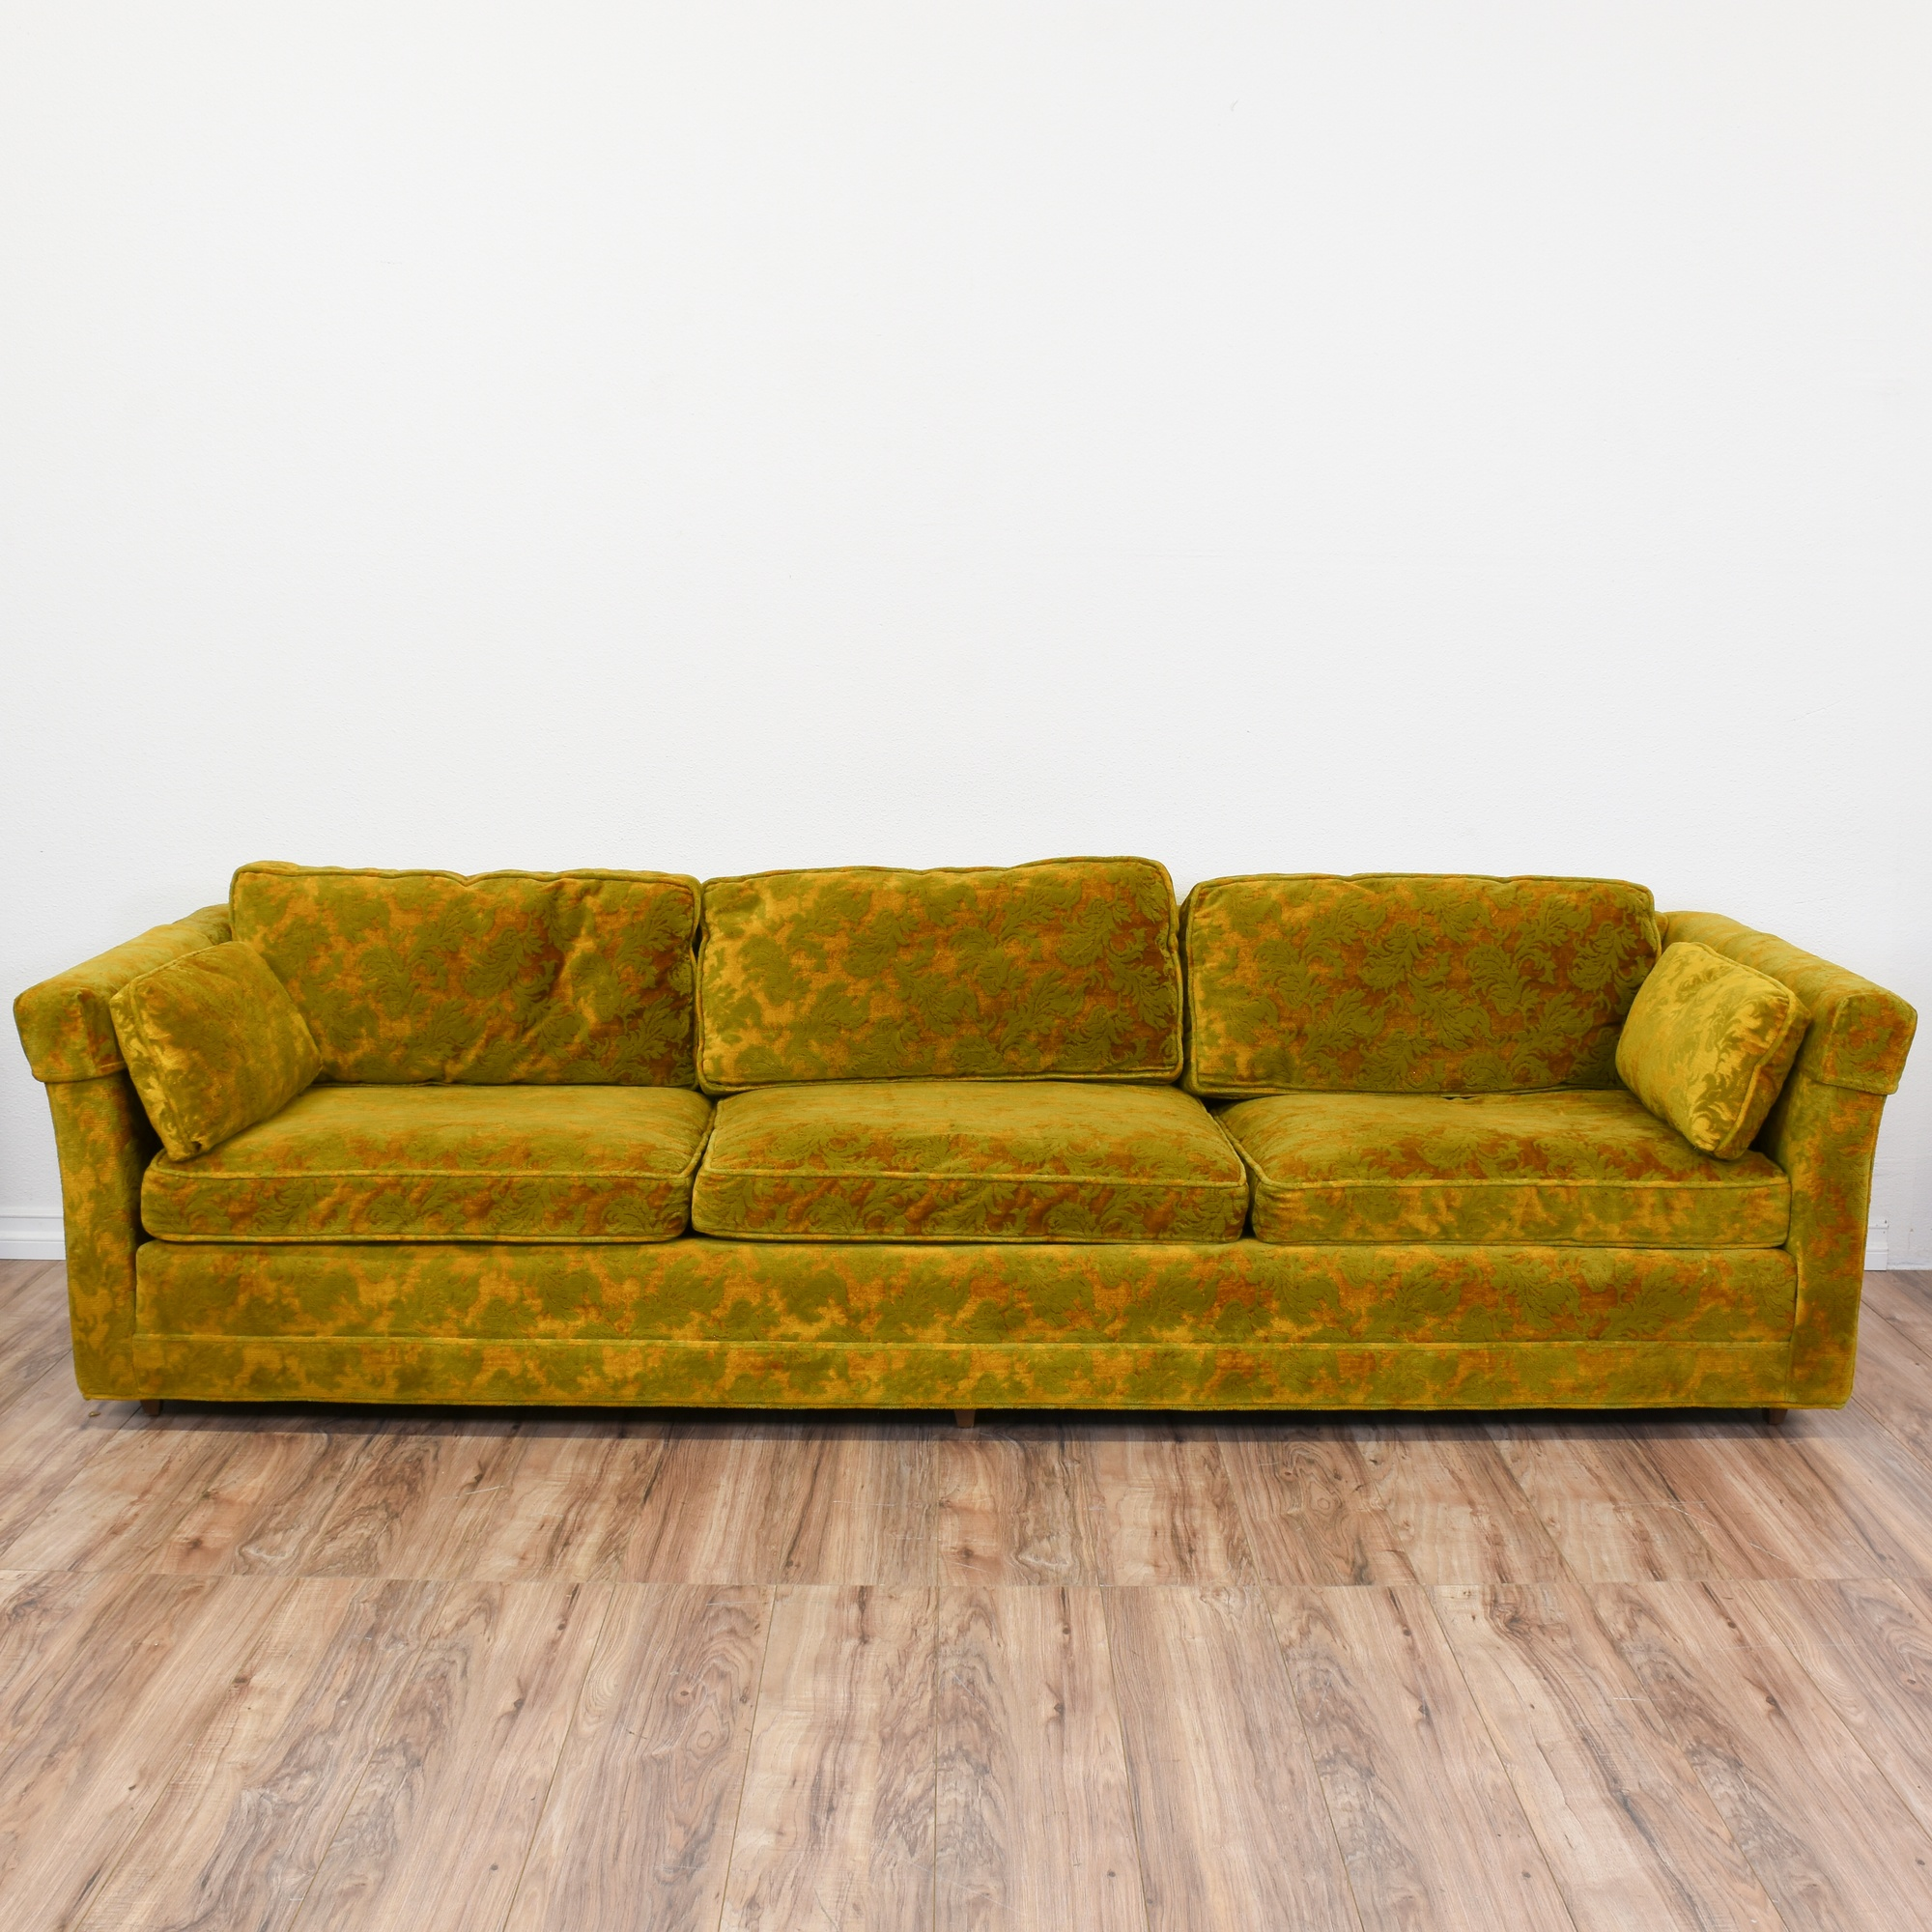 Long Damask Voided Velvet Mustard Yellow Sofa | Loveseat Vintage Furniture  San Diego